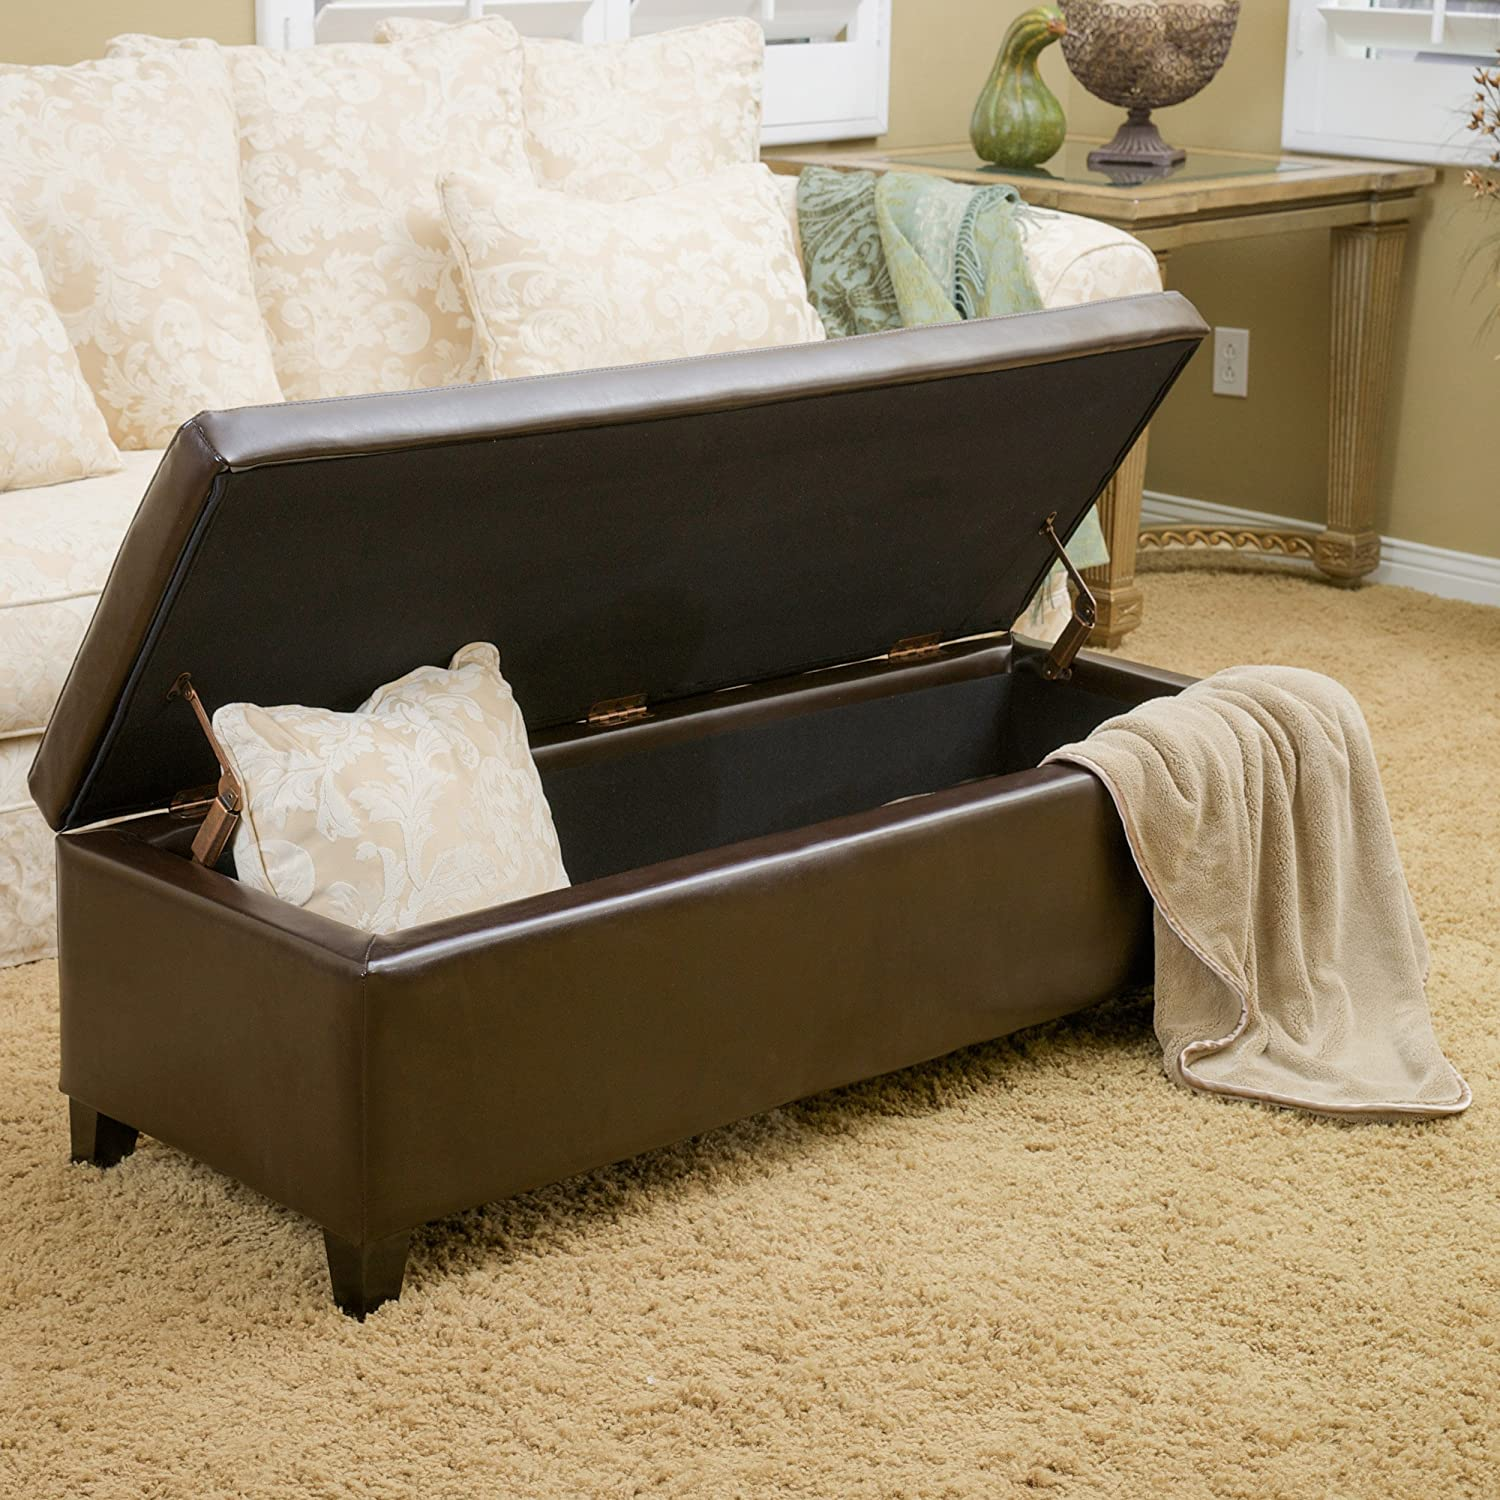 Great Deal Furniture 296179 Virginia Chocolate Brown Storage Ottoman,